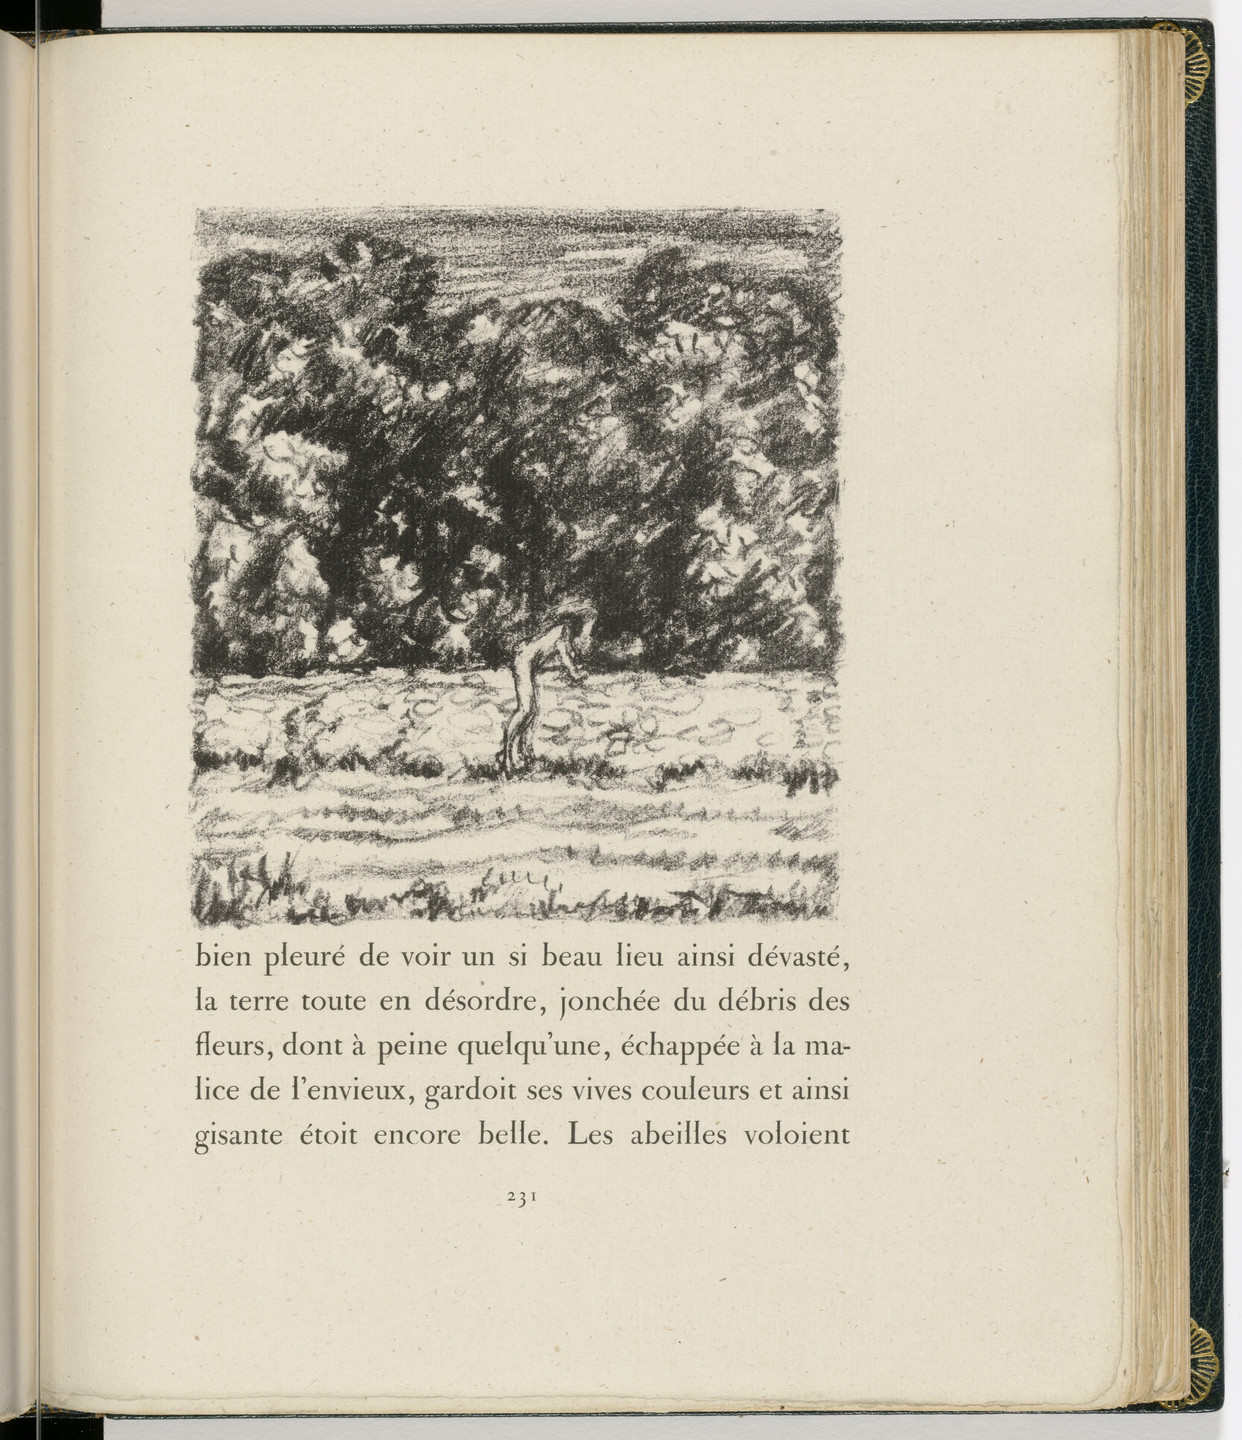 Pierre Bonnard. In-text plate (page 231) from Daphnis et Chloé. 1902